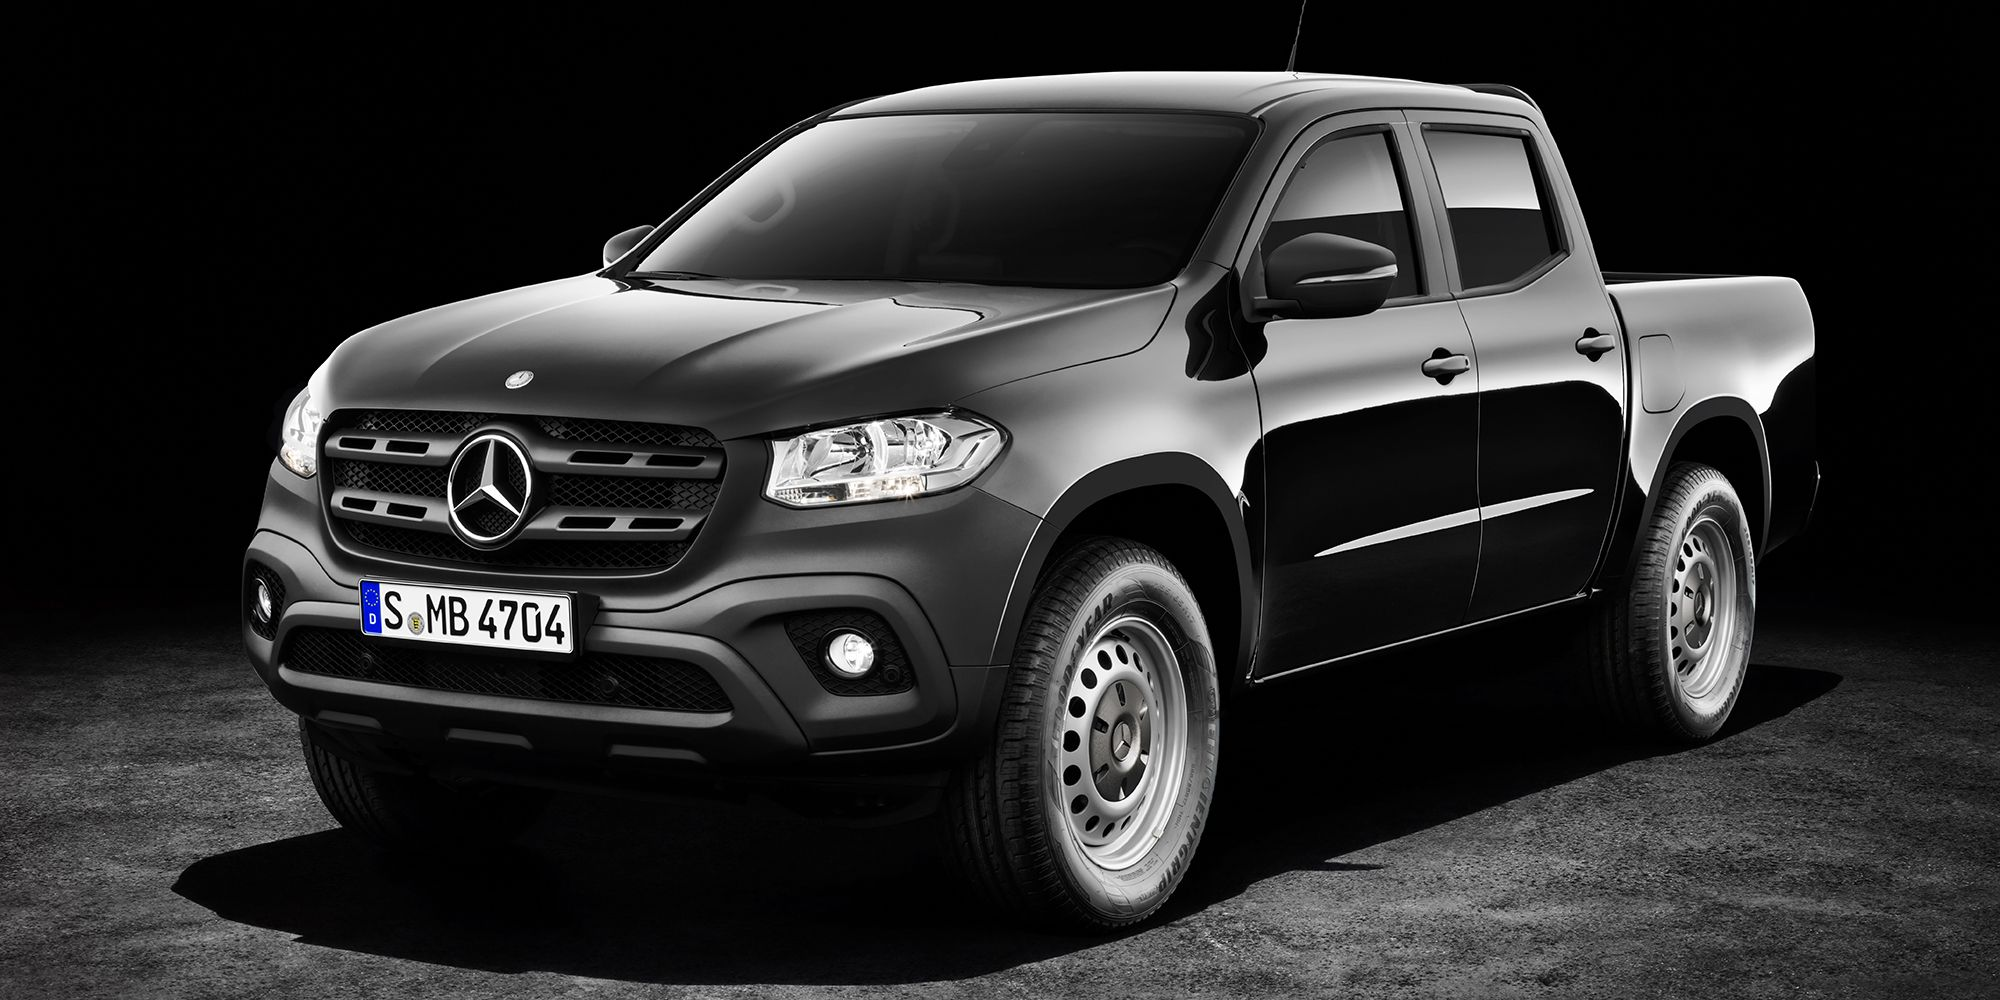 2018 Mercedes Pick Up Truck >> Mercedes X Class Details Confirmed 2018 Mercedes Benz Pickup Truck